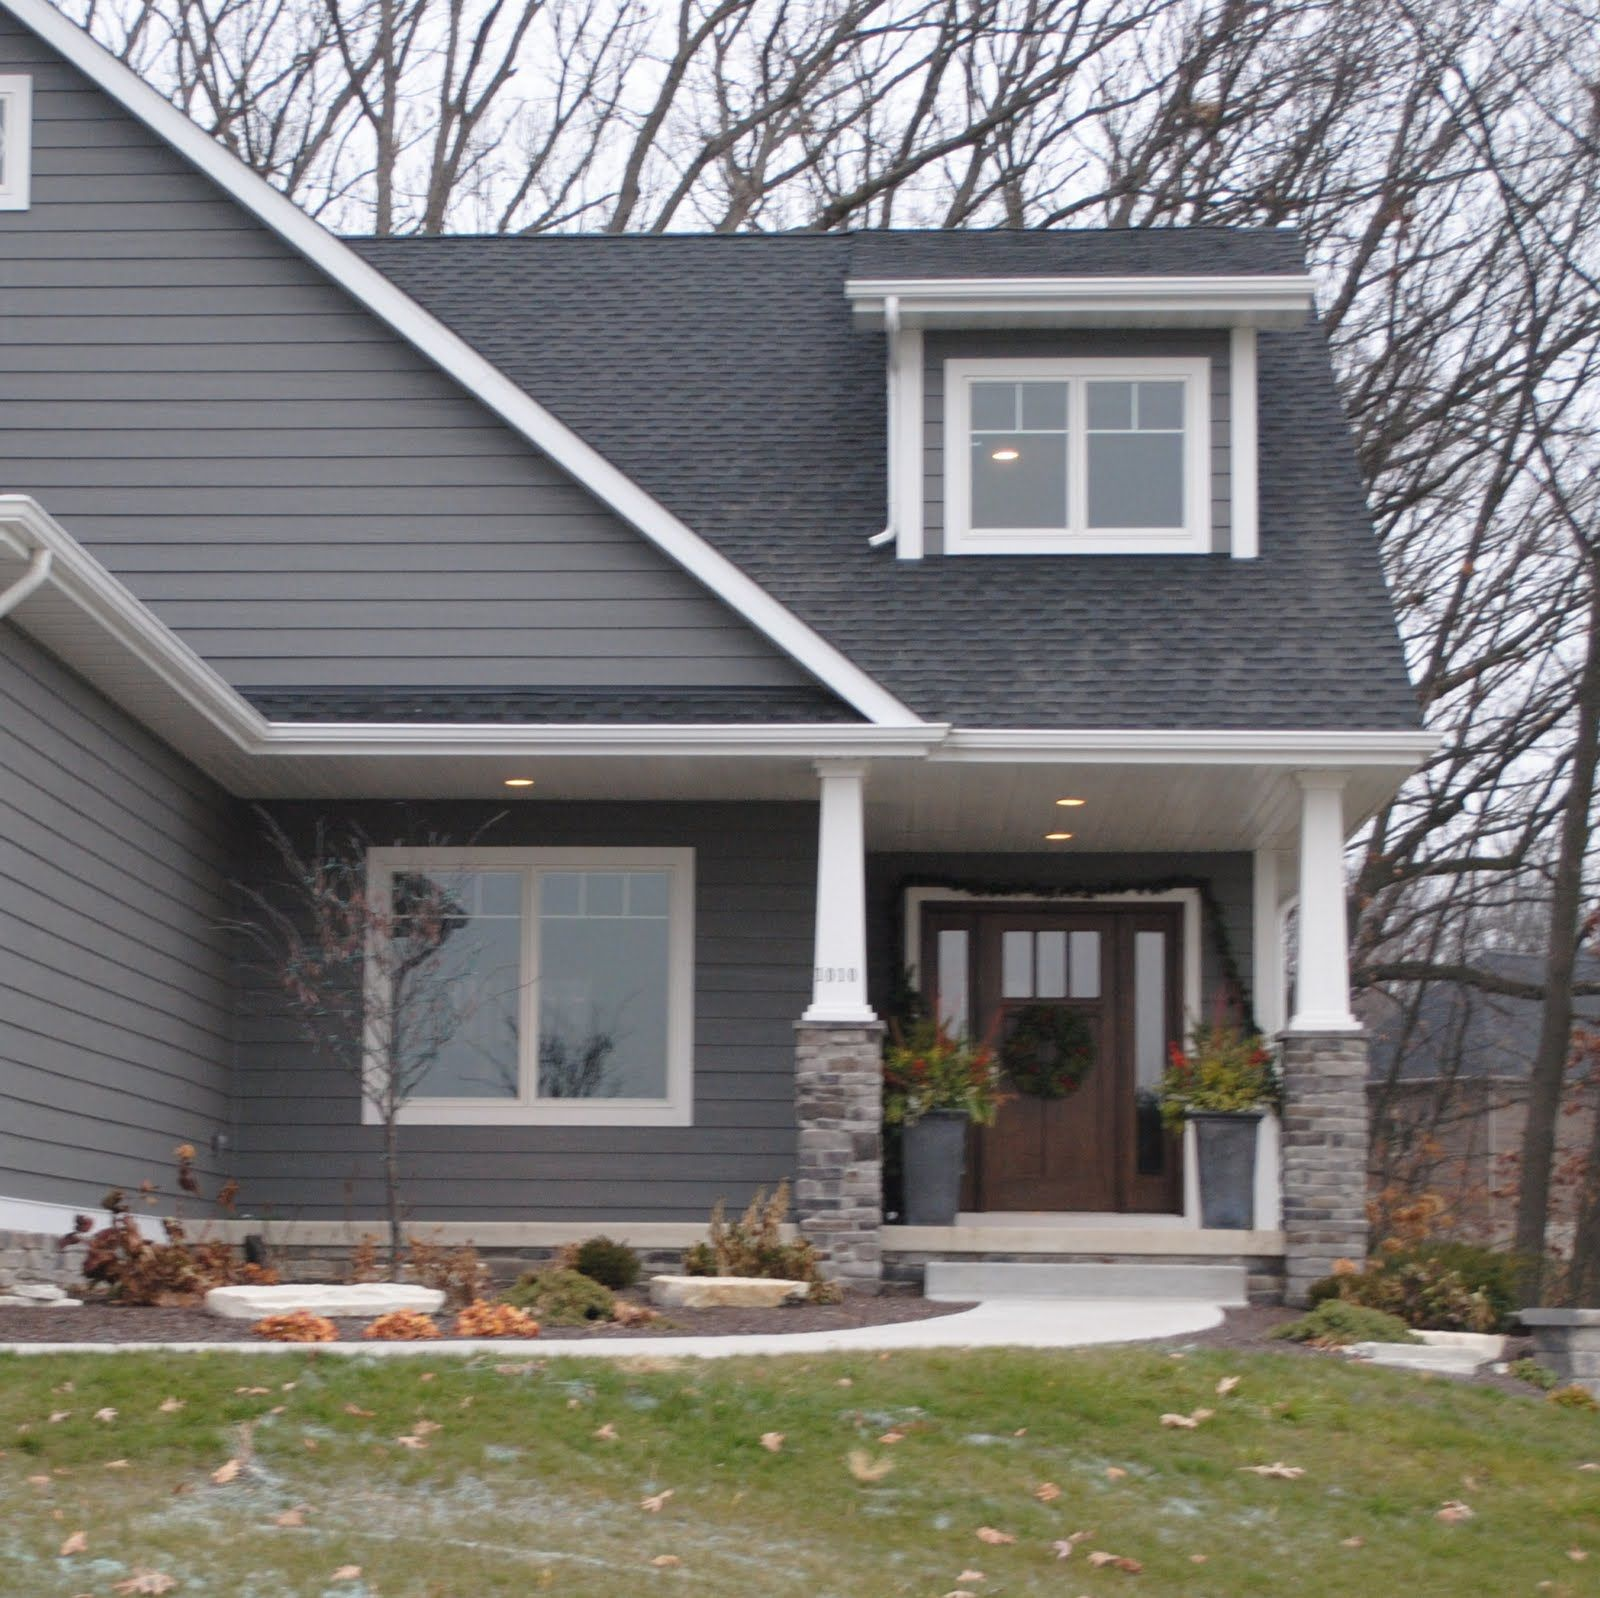 Casa Exterior By Maria Elena In 2020 Gray House Exterior Vinyl Siding House Exterior Paint Colors For House